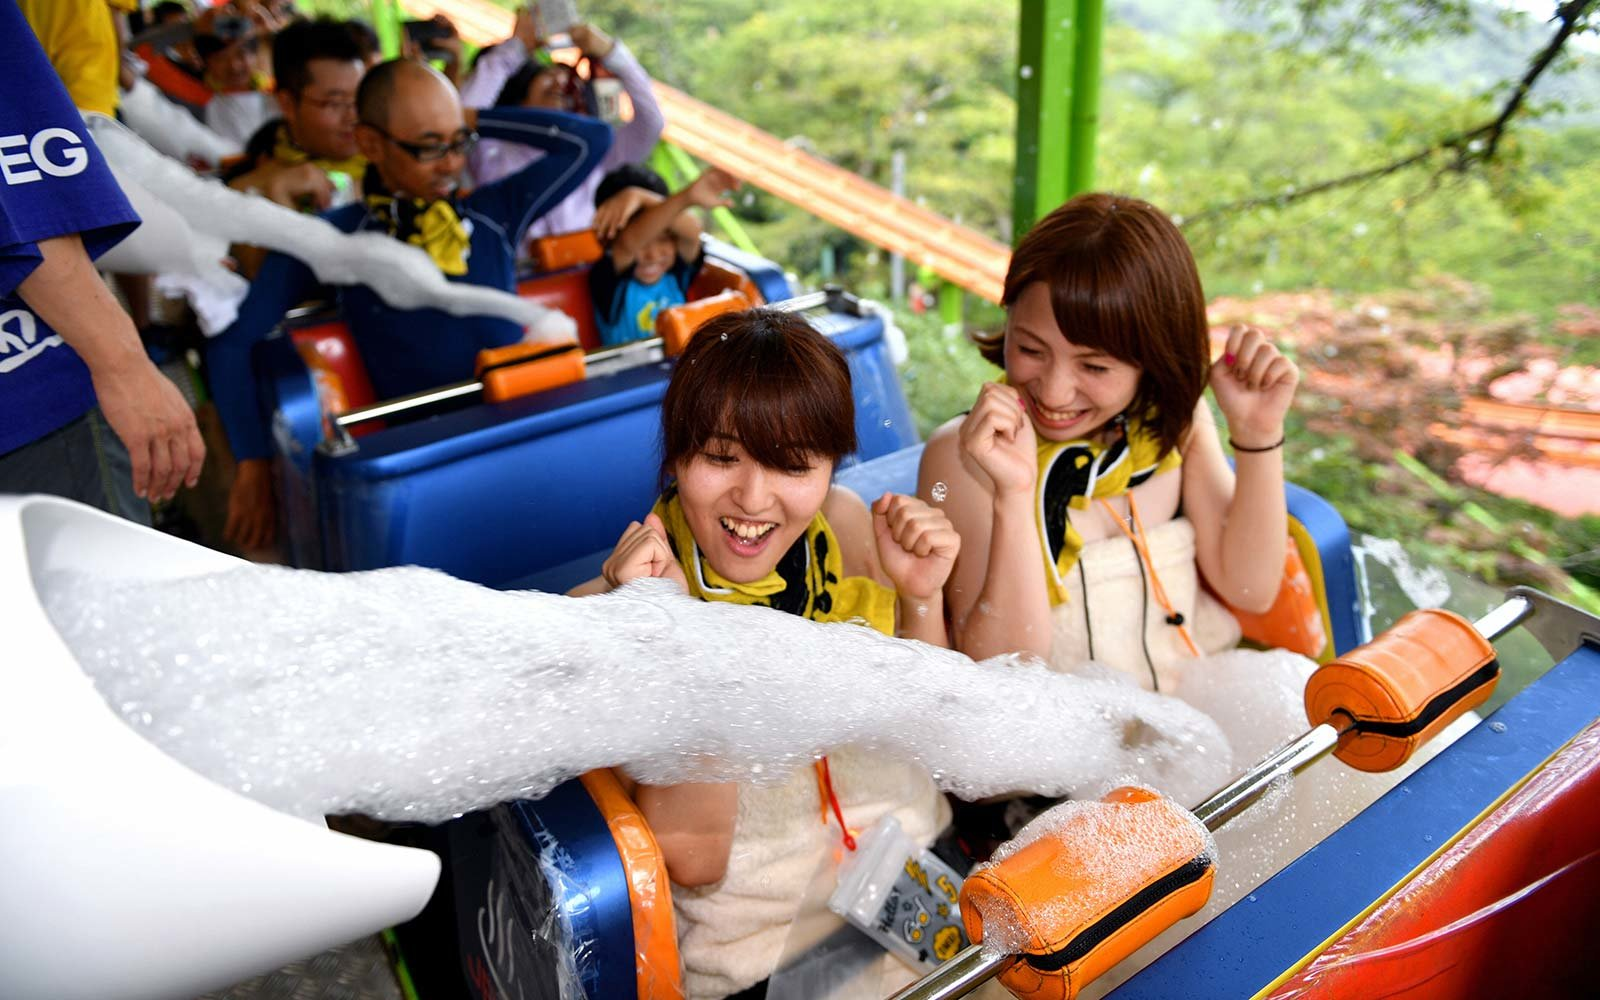 Visitors are splashed foam while riding a rollercoaster in  Yu-enchi  Spamusement park in Beppu, Oita, Japan Rakutenchi Hot Spring Onsen Theme Park